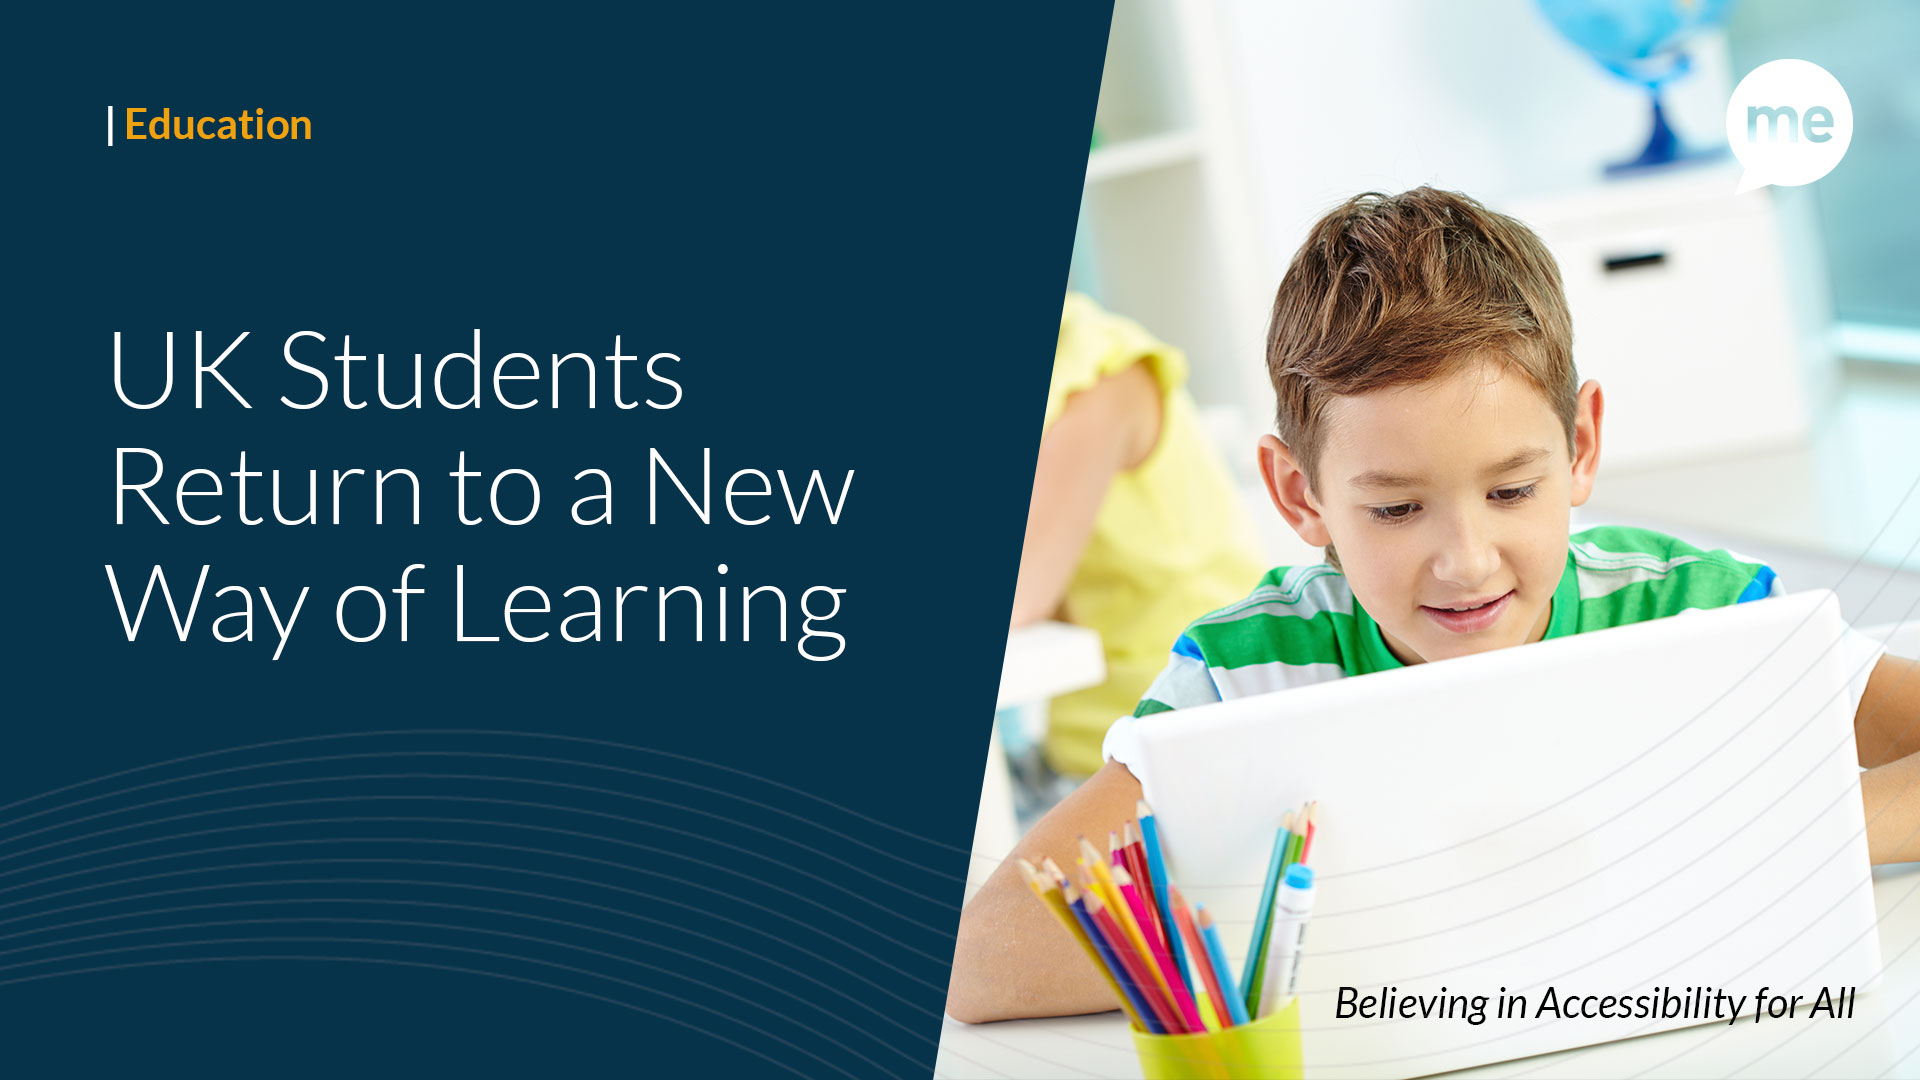 UK Students Return to a New Way of Learning